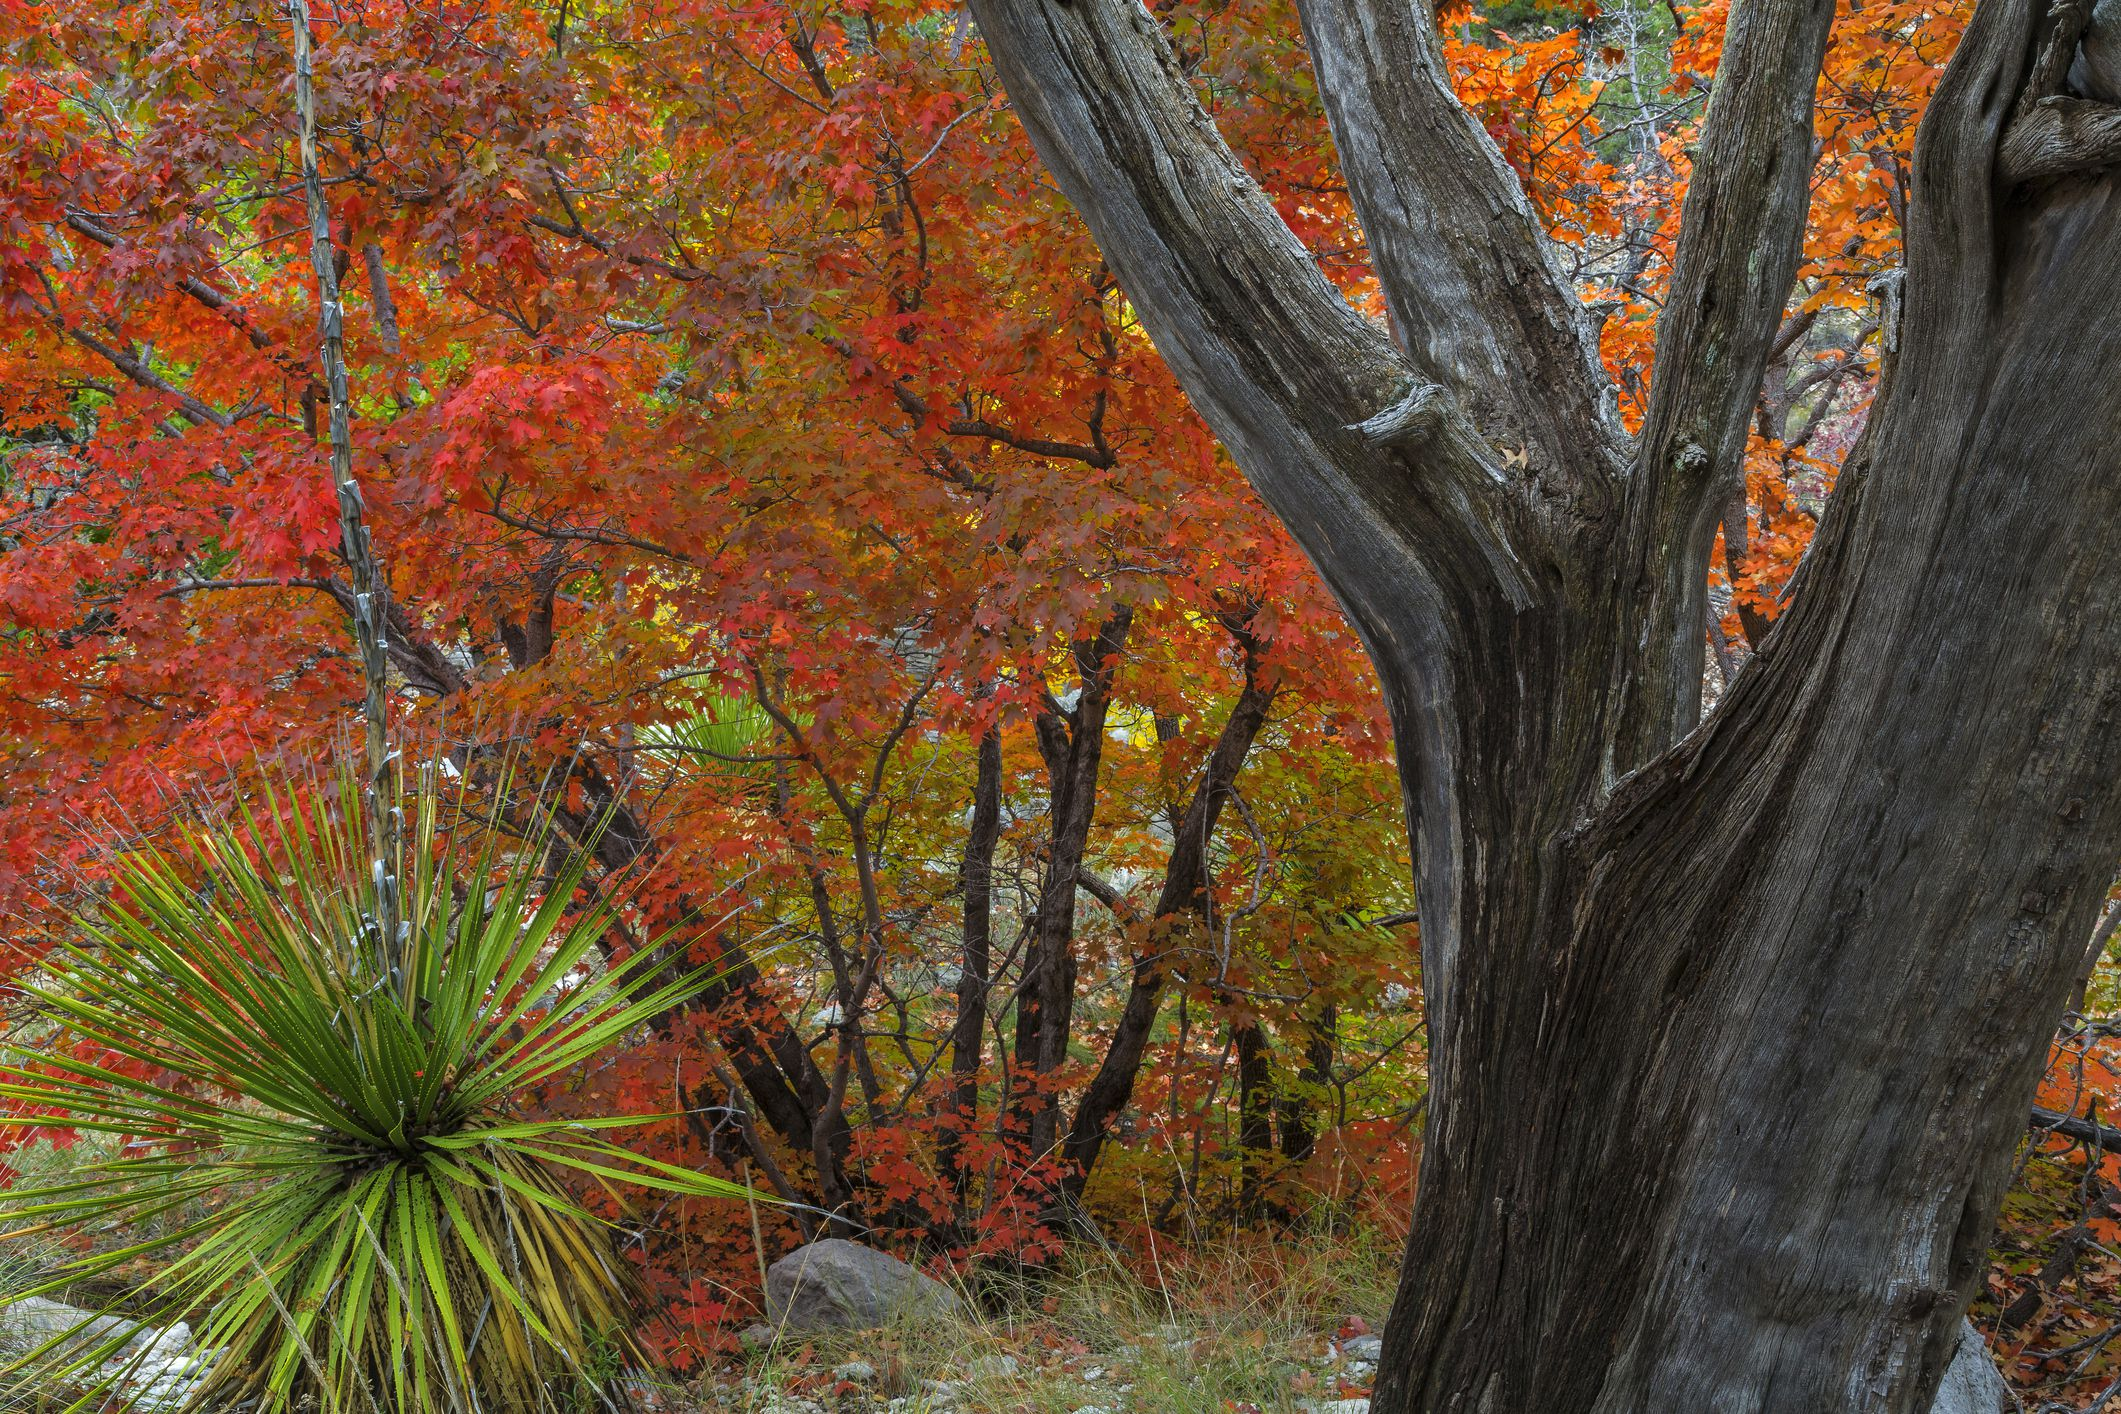 Bigtooth maple and dead juniper tree, Guadalupe Mountains National Park, Texas